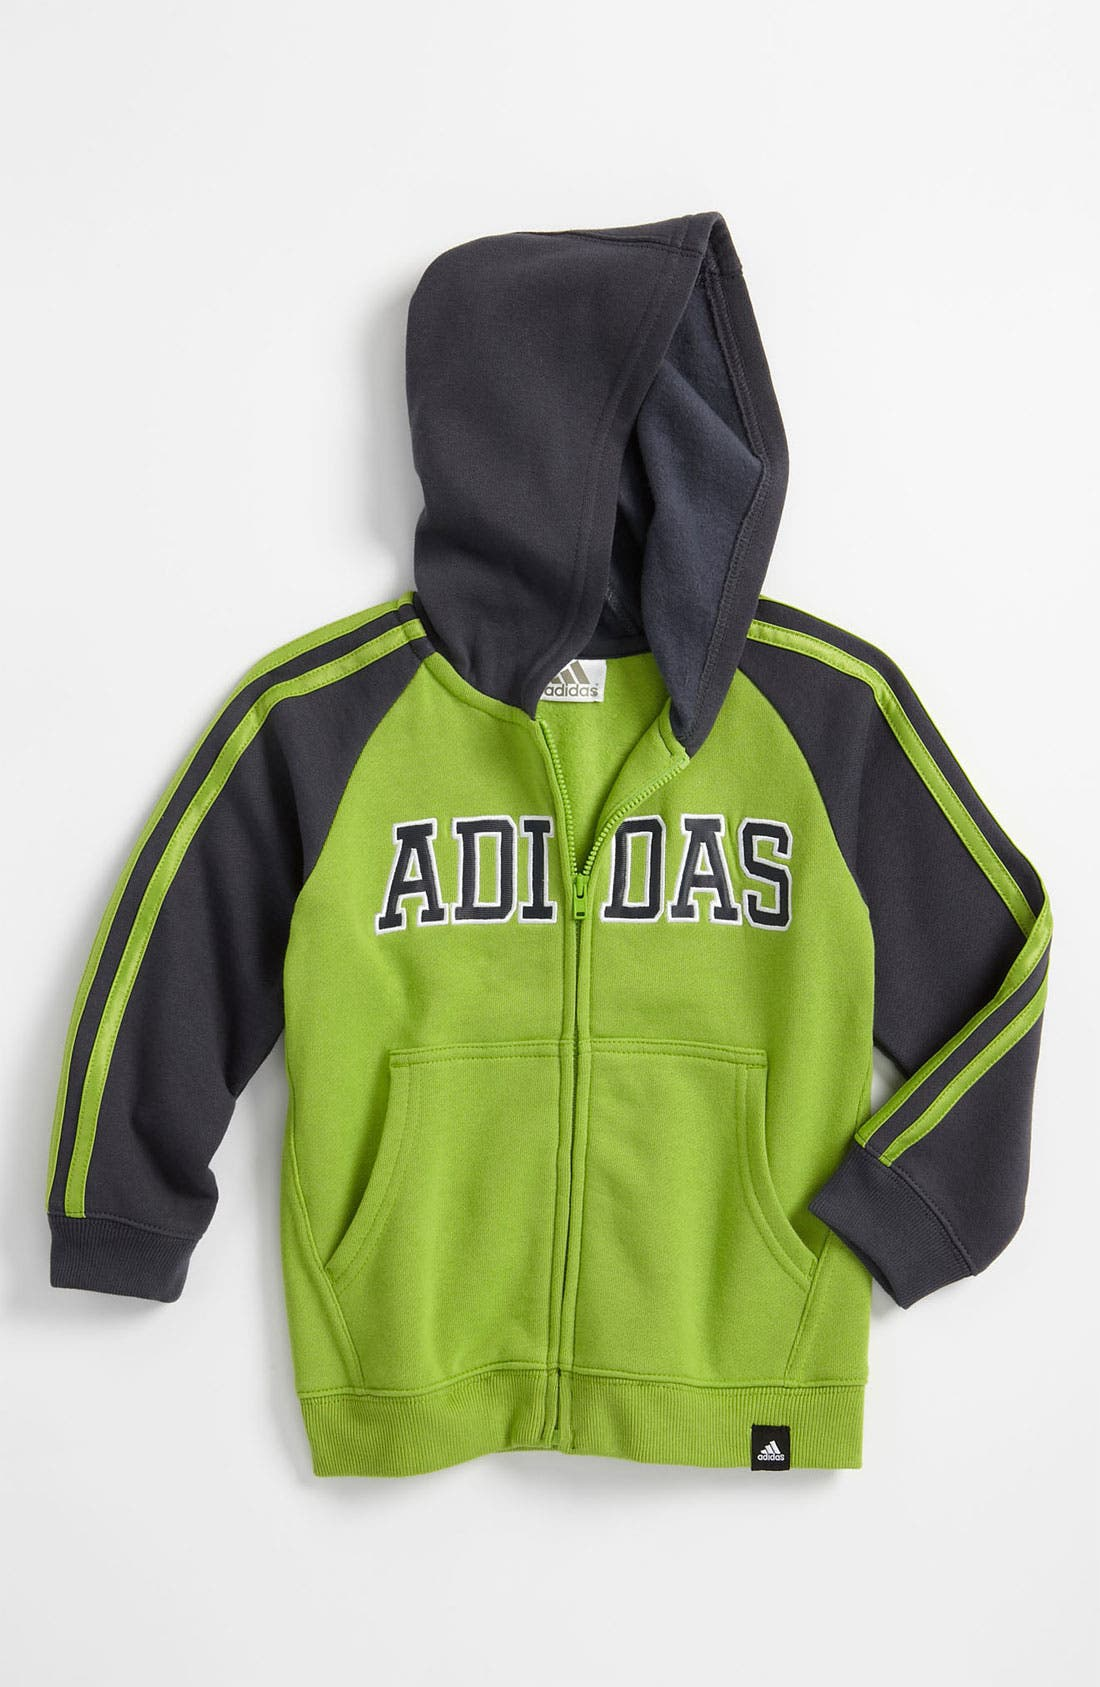 Alternate Image 1 Selected - adidas 'Warm Up' Jacket (Toddler)